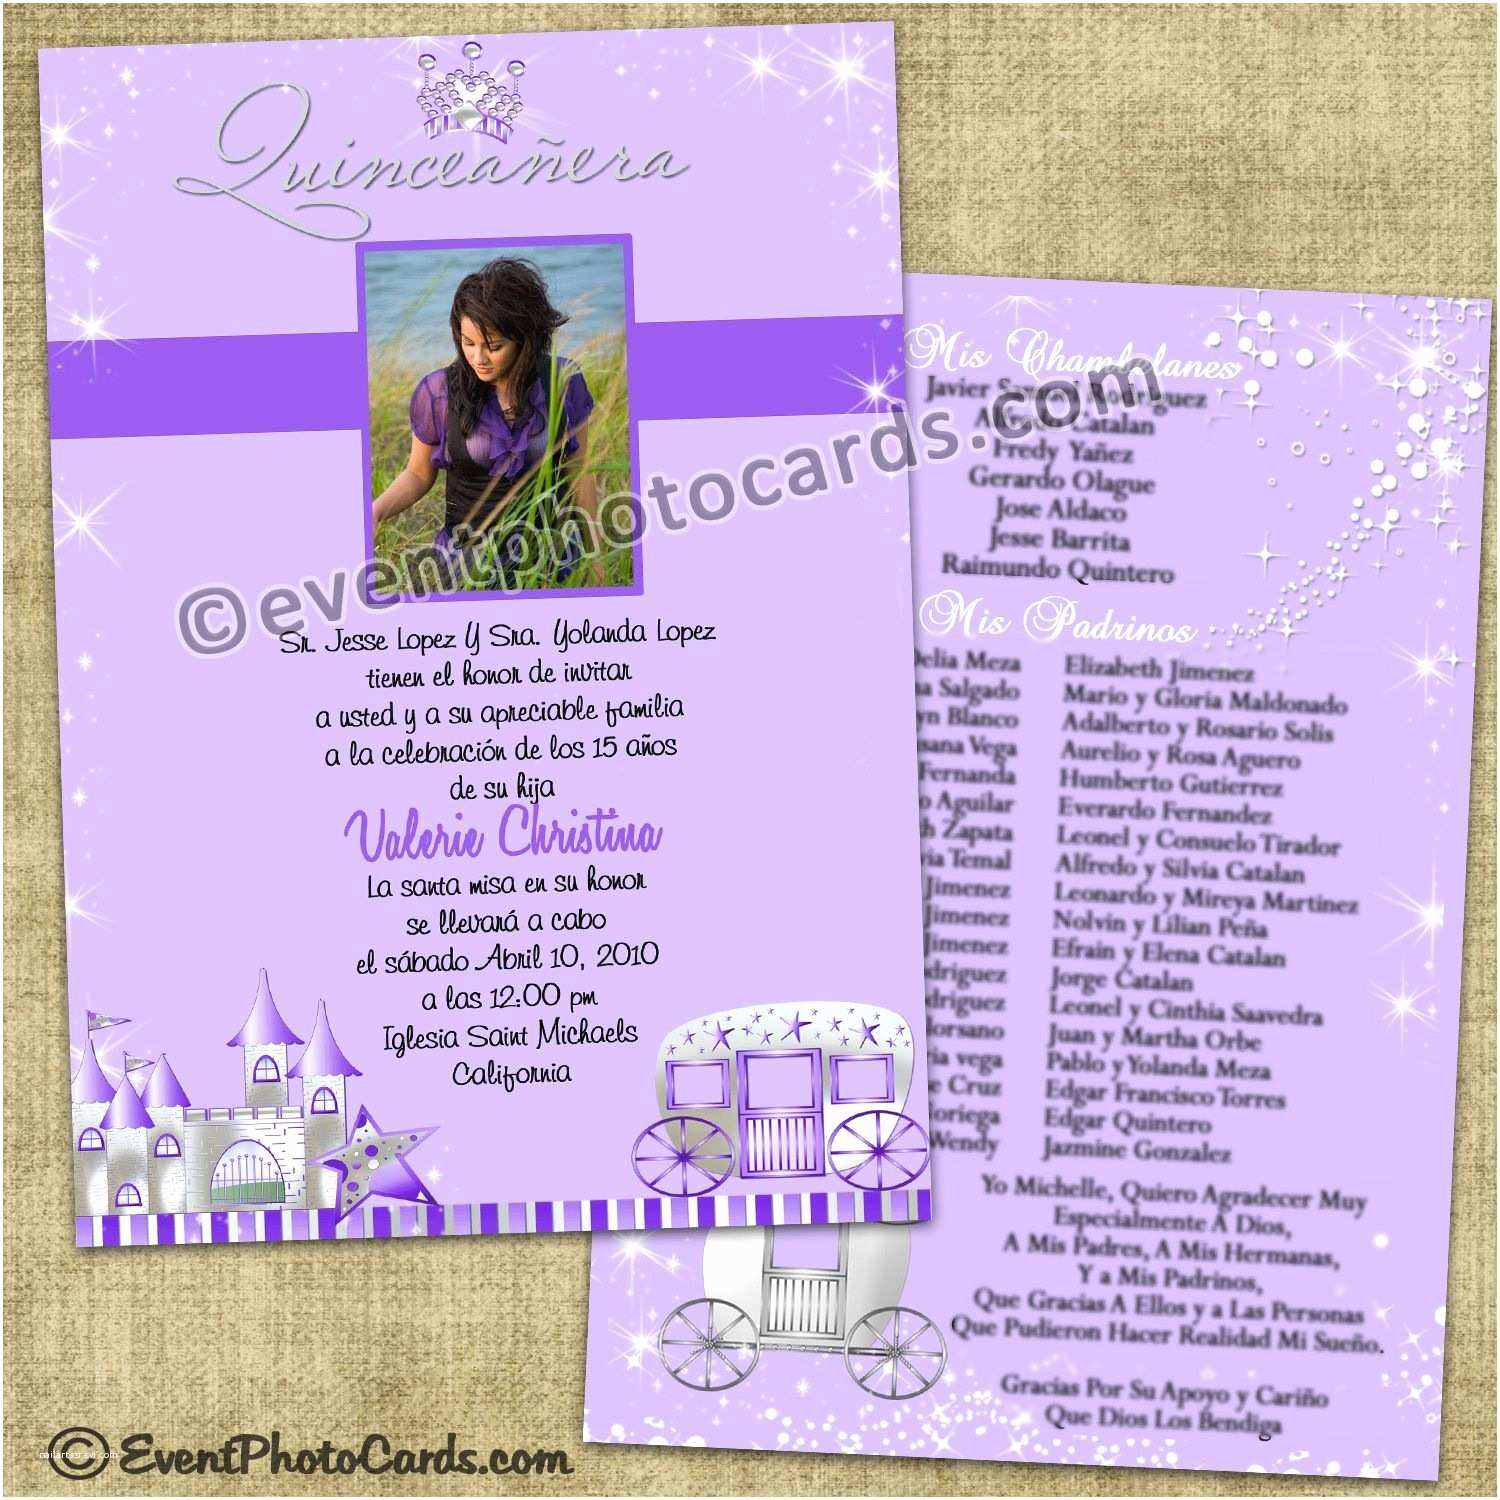 Quinceanera Invitation Wording Purple Princess Quinceanera Invitations Sweet 15